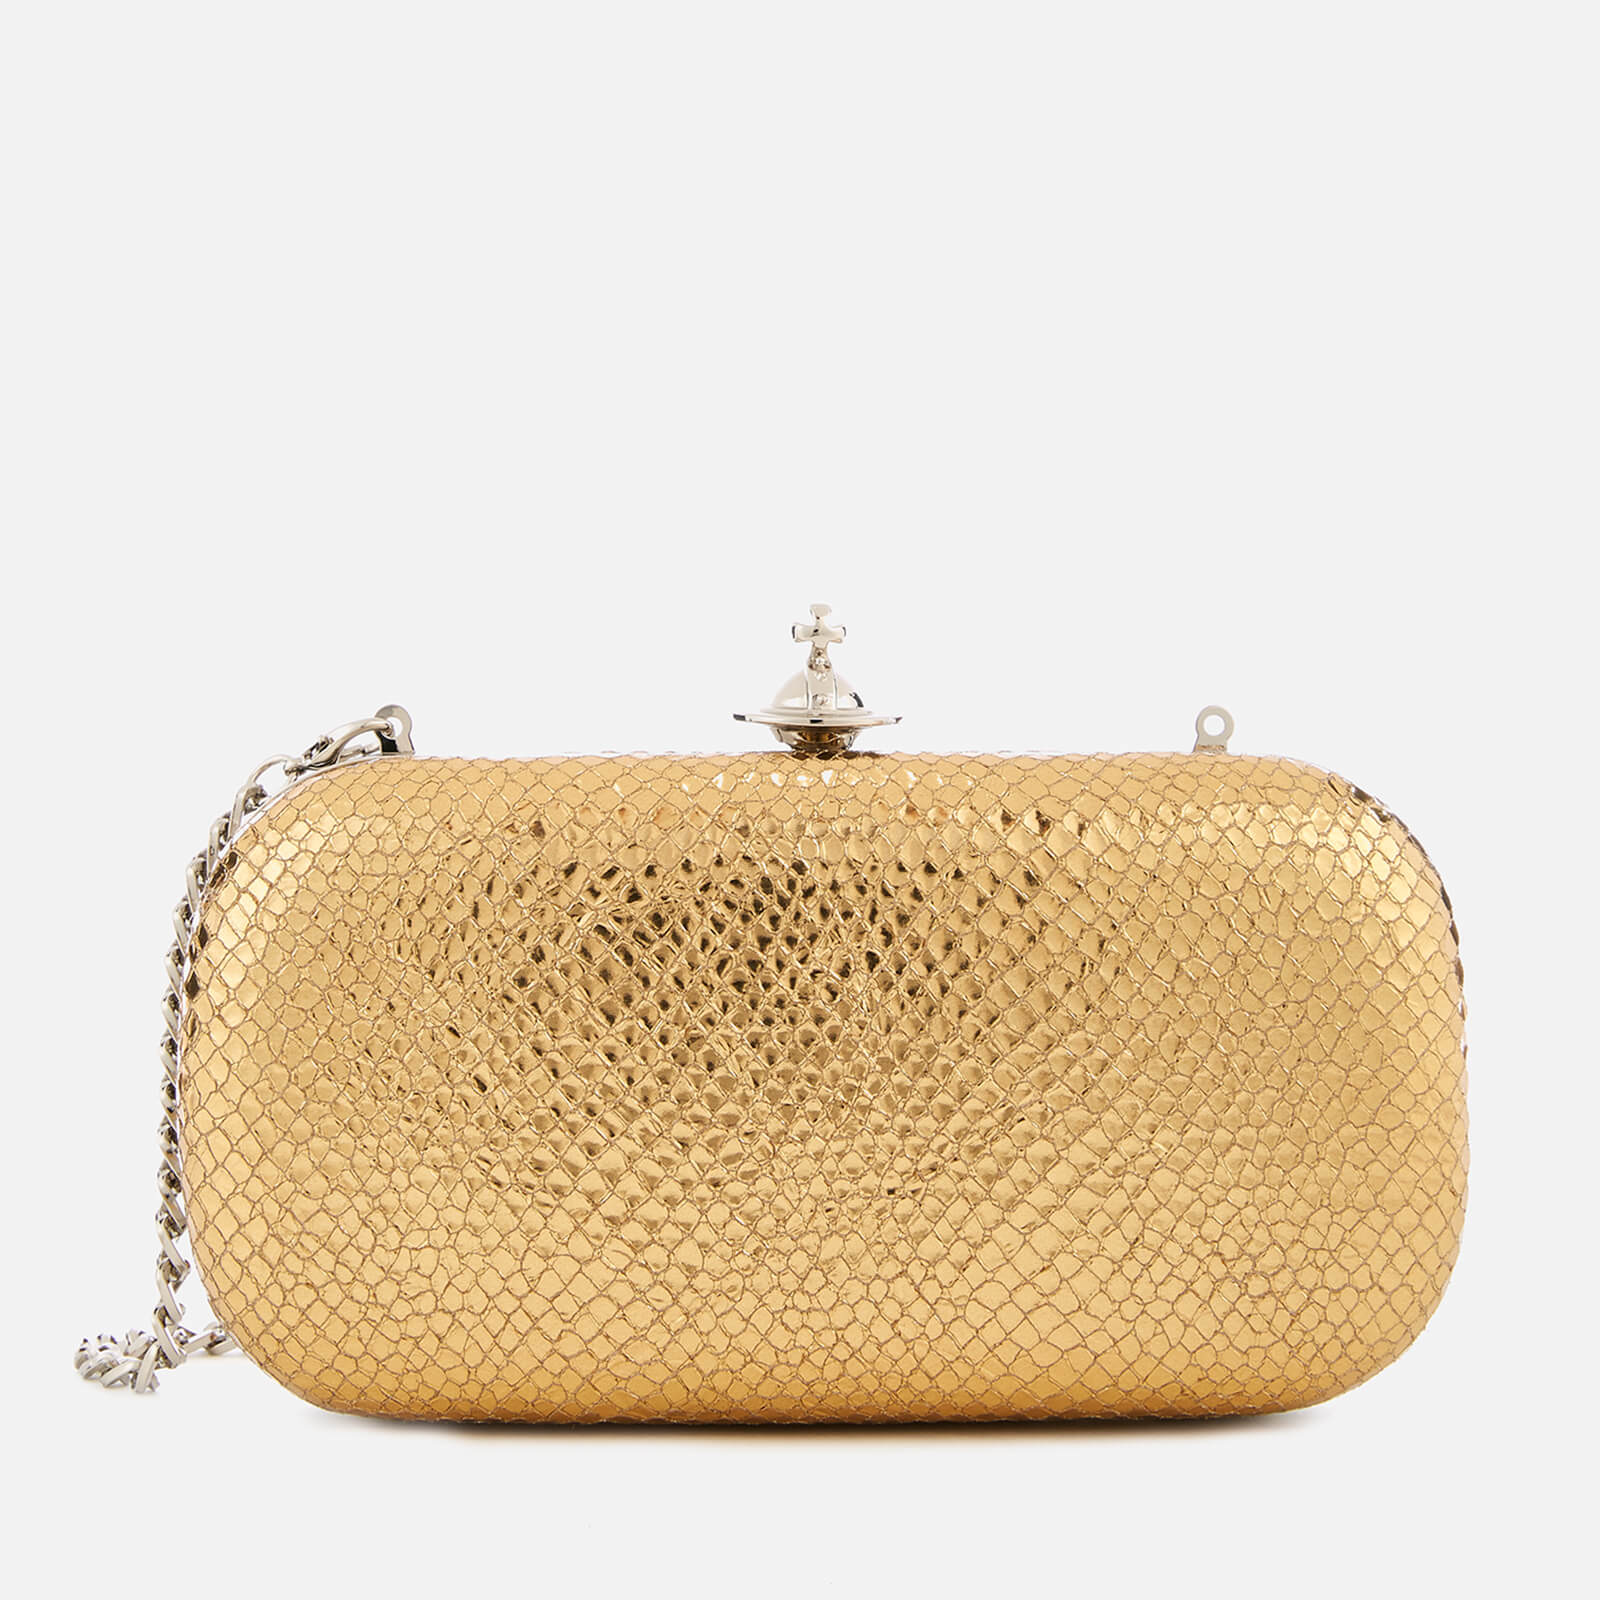 d27cbba04 Vivienne Westwood Women's Verona Medium Clutch Bag - Gold - Free UK  Delivery over £50